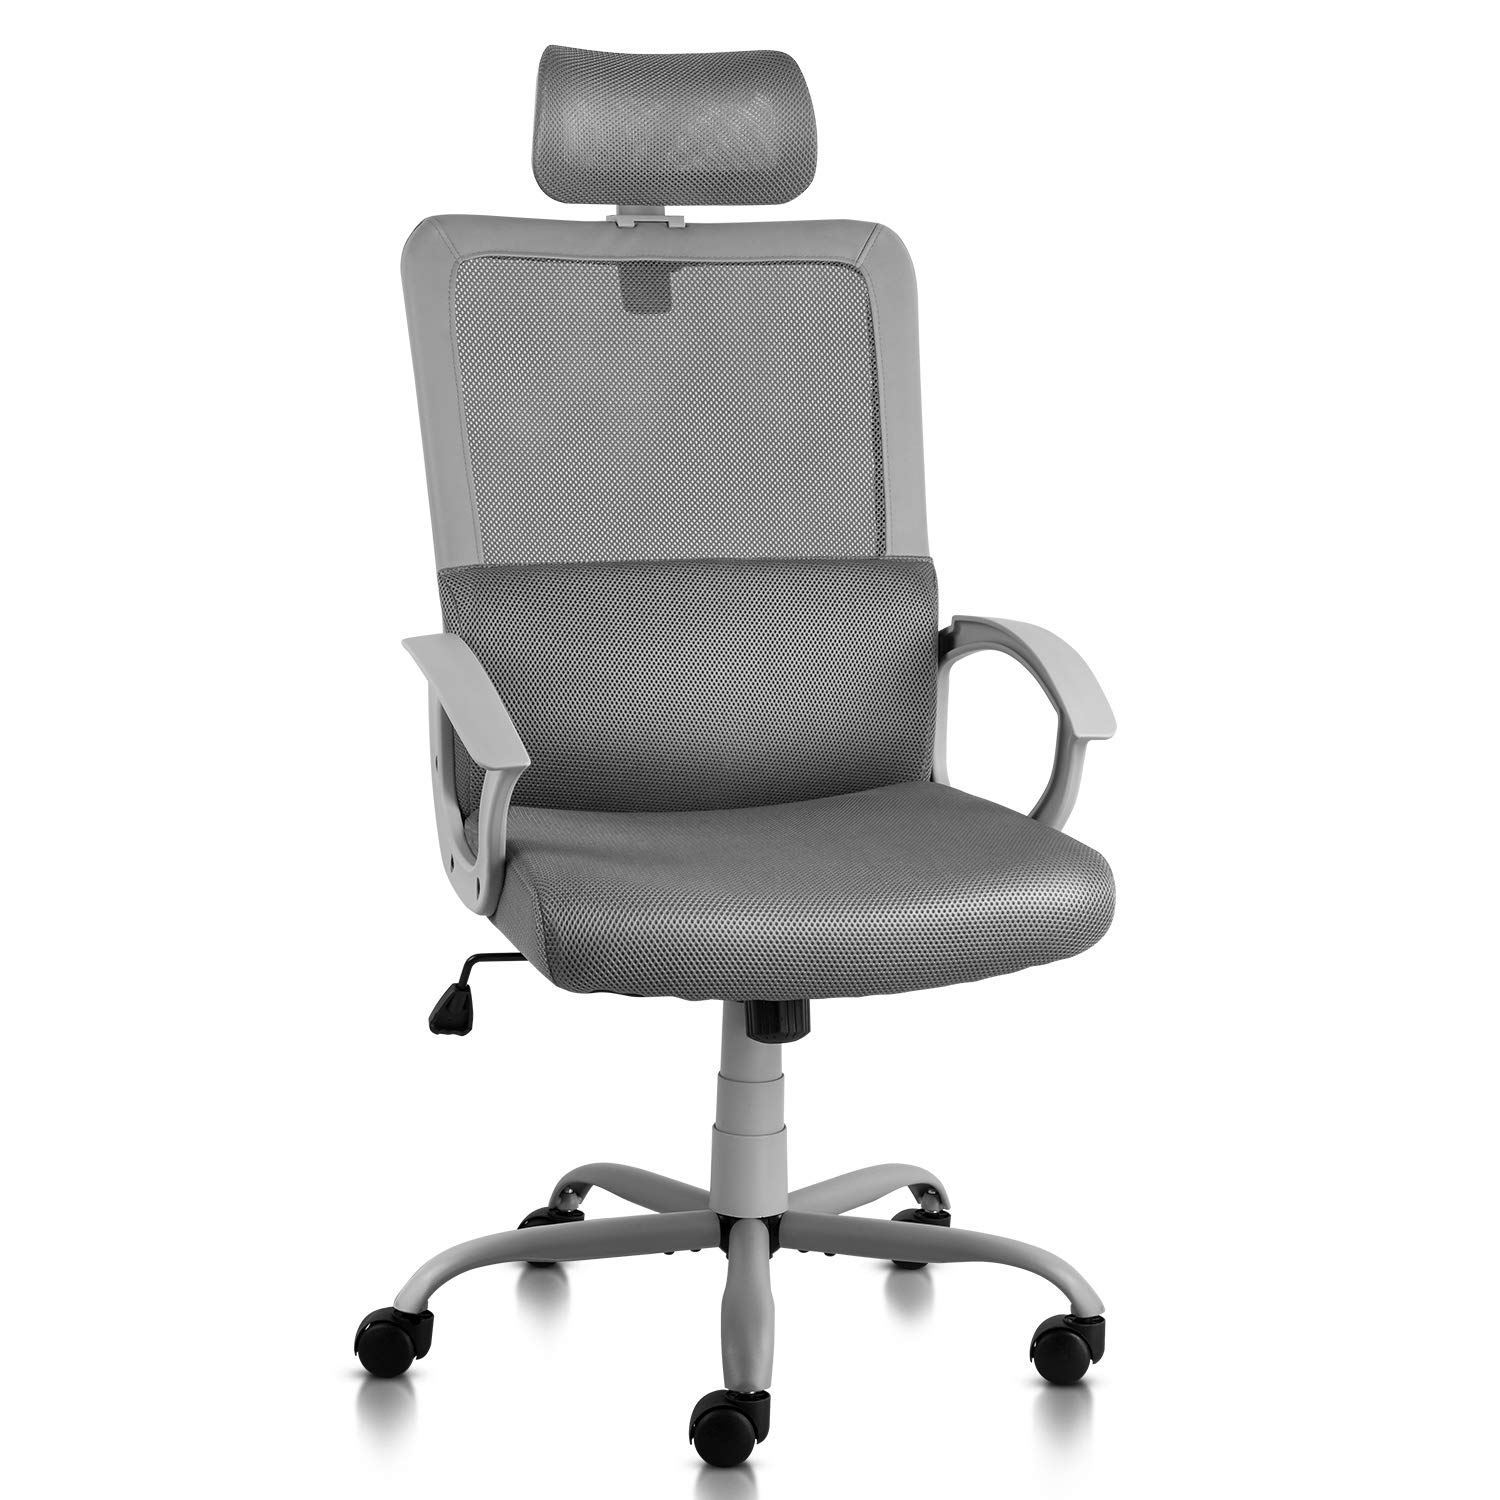 Smugdesk Ergonomic Office Chair High Back Mesh Office Chair Adjustable Headrest Computer Desk Chair for Lumbar Support, Grey by Smugdesk (Image #1)